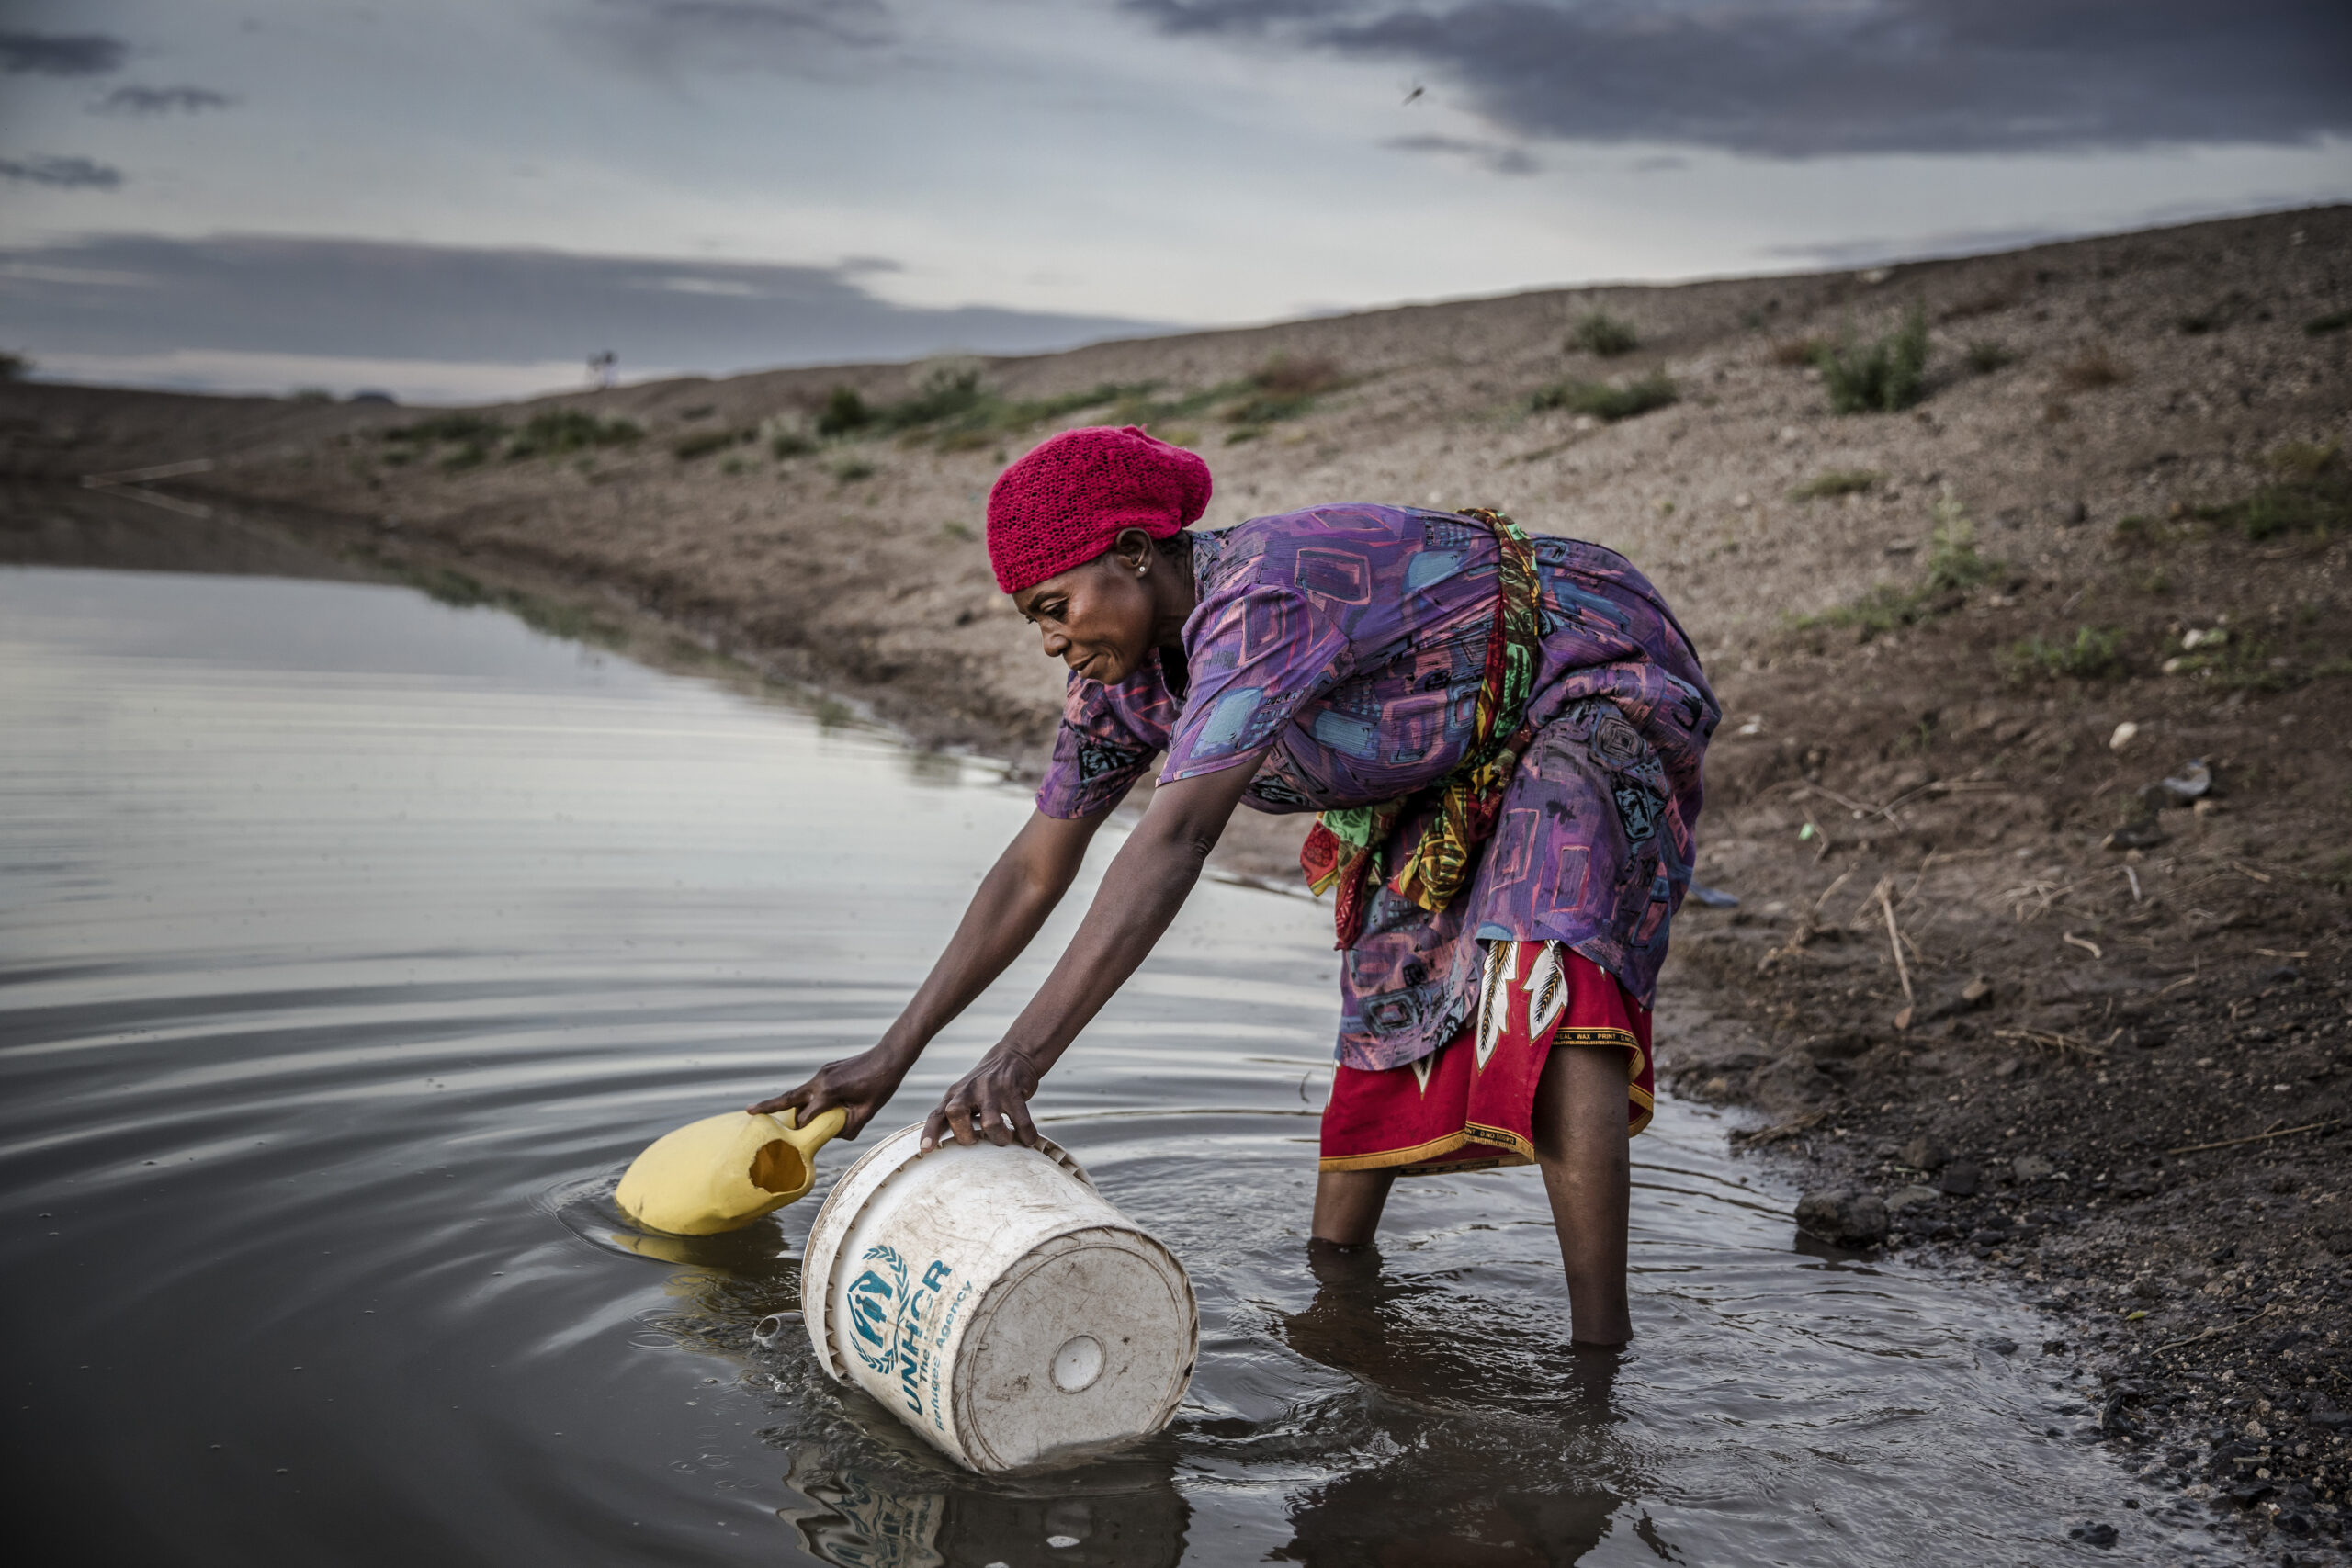 A refugee from Democratic Republic of Congo, collects water for their vegetable crops at a water pan in Kalobeyei settlement for refugees in Turkana County, Kenya on October 2, 2019. Credit: Luis Tato/AFP via Getty Images